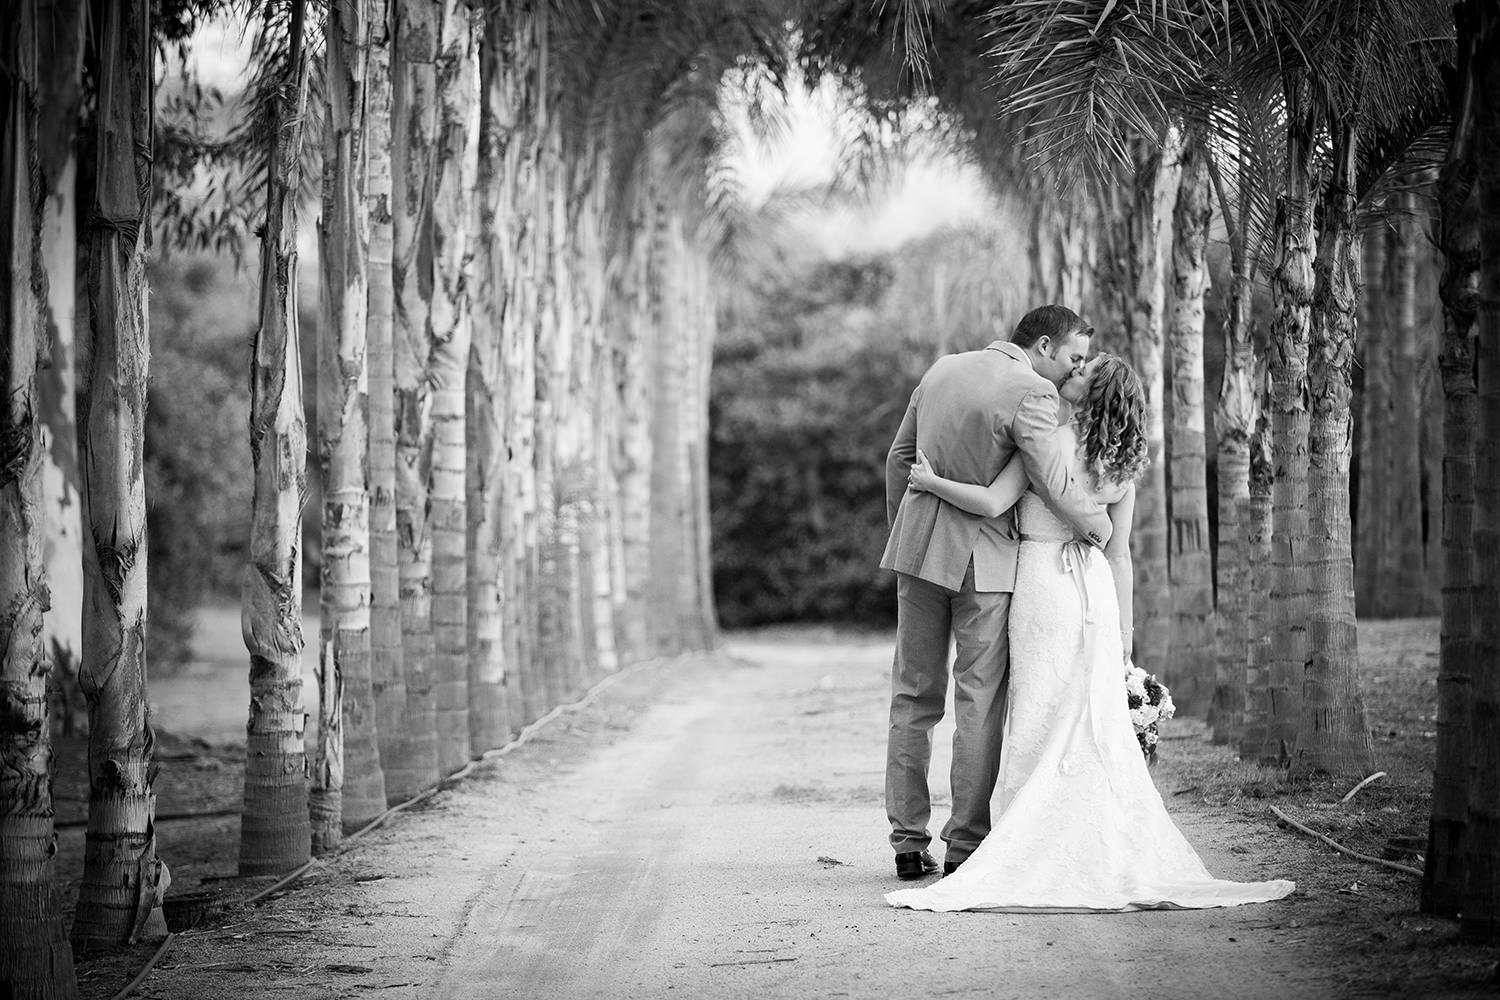 black and white romantic shot by the palm trees